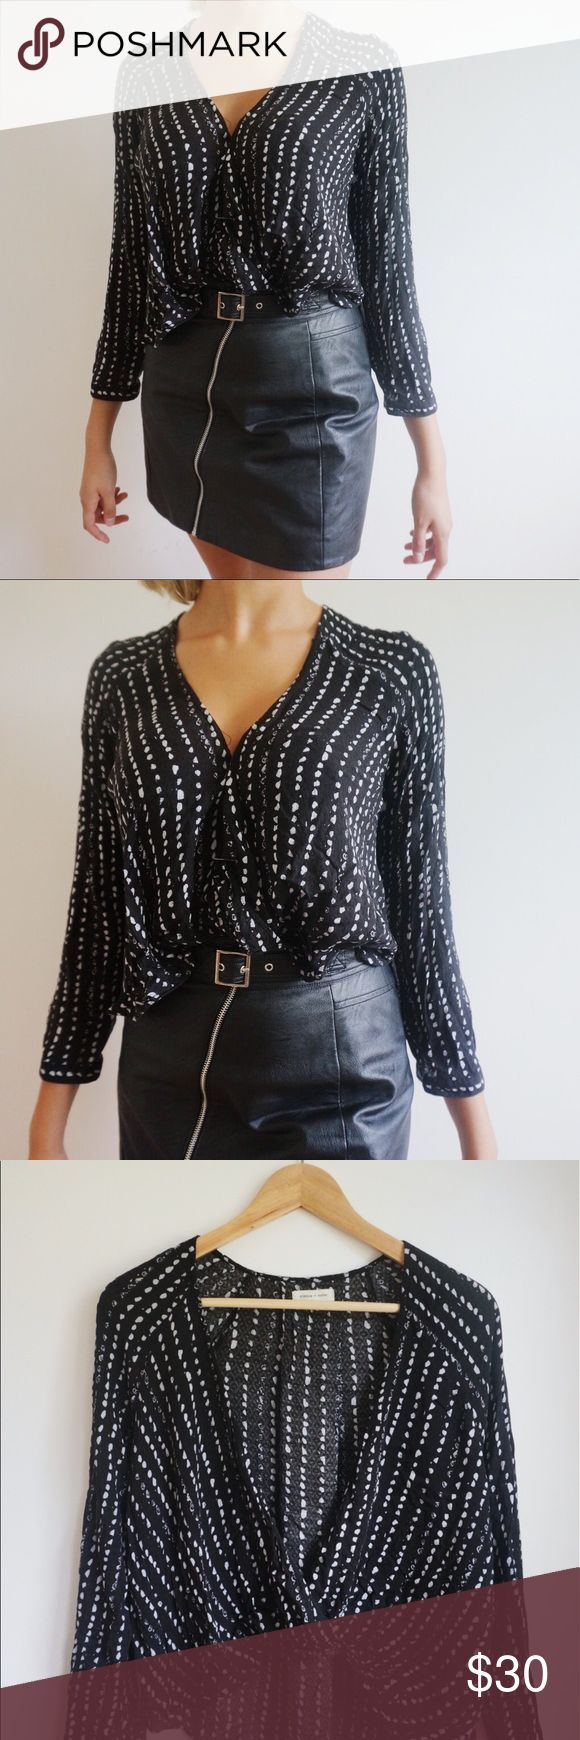 Urban Outfitters open front shirt 🌟 This shirt is great for my ladies on the smaller bust side - and the open front is a perfect way to display those lacy bralettes 😻 It's very lightweight and perfect for the summer // SIZE: MEDIUM GOOD CONDITION Urban Outfitters Tops Tees - Long Sleeve